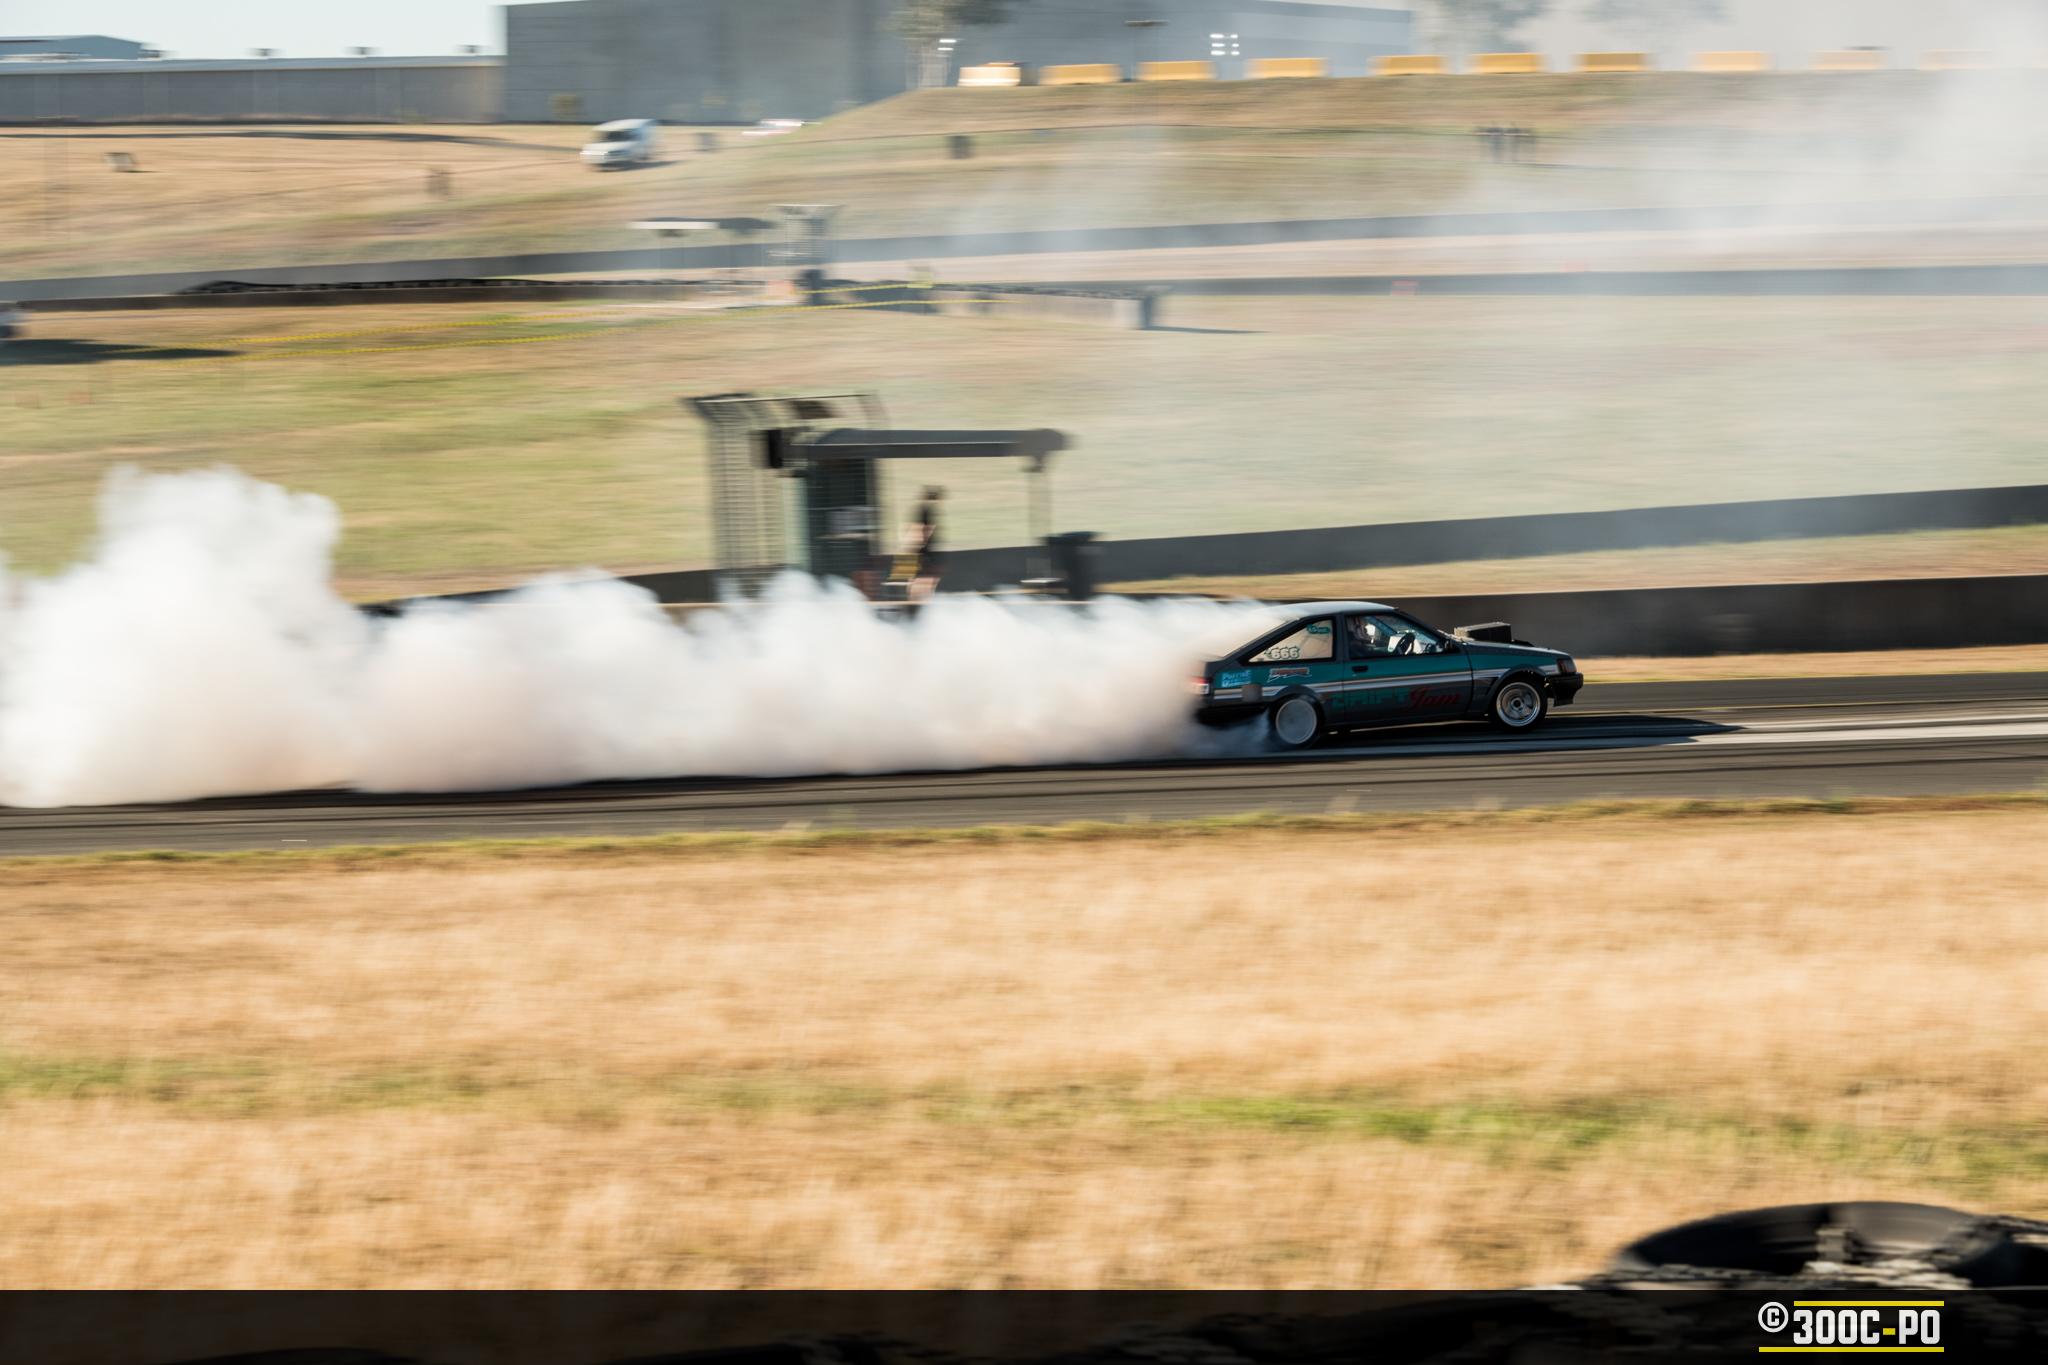 2017-10-12 - WTAC 2017 Test Day 077